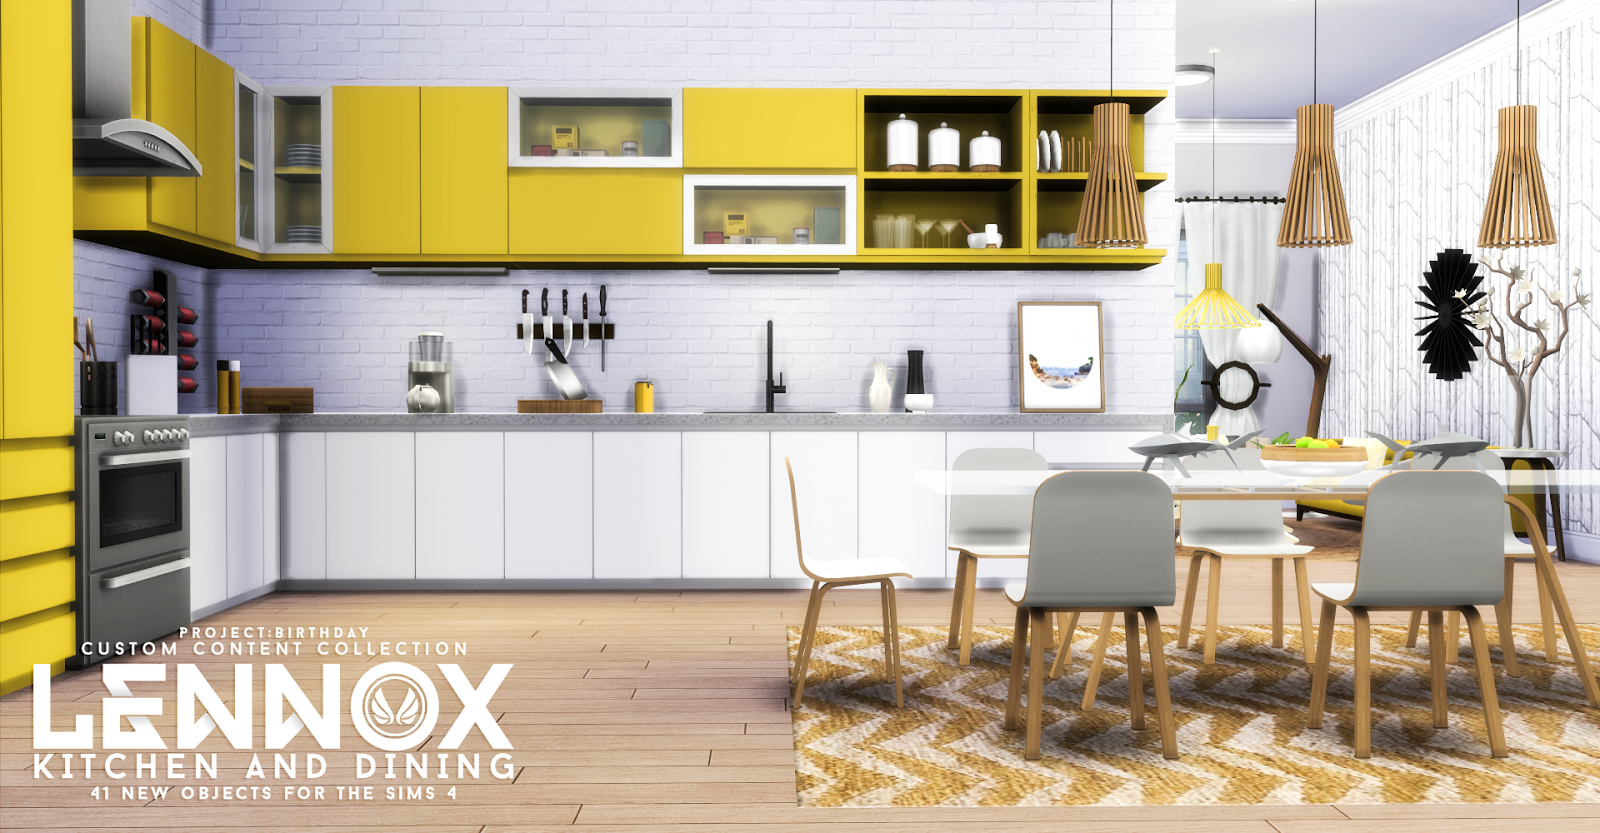 Lennox kitchen and dining by peacemaker ic teh sims for Sims 3 kitchen designs